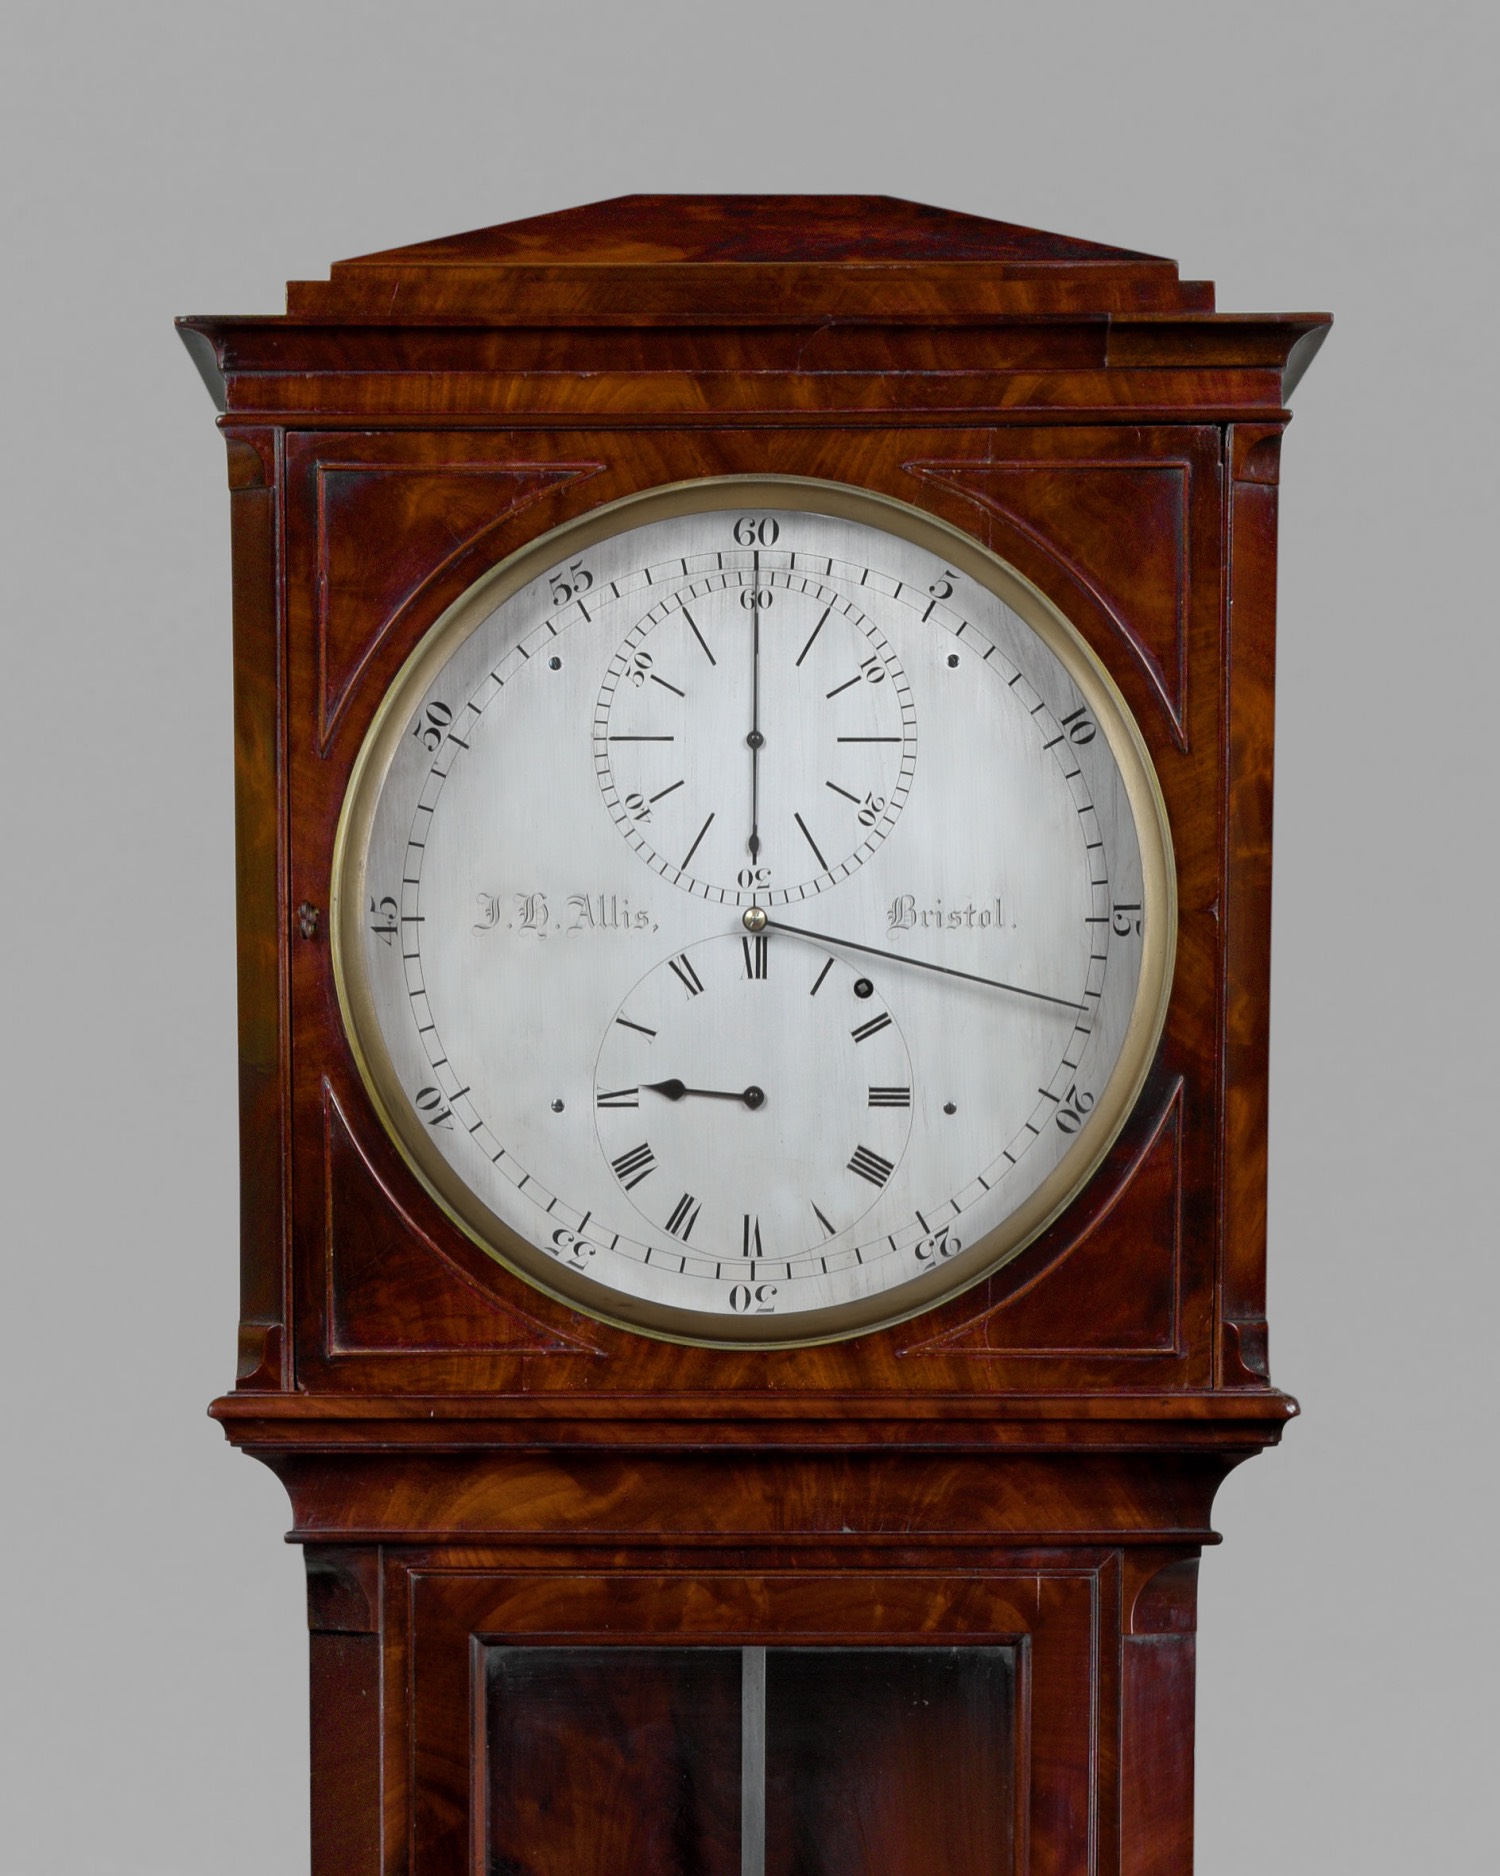 J. H. ALLIS. AN EXCEPTIONAL REGENCY PERIOD MAHOGANY LONGCASE REGULATOR.